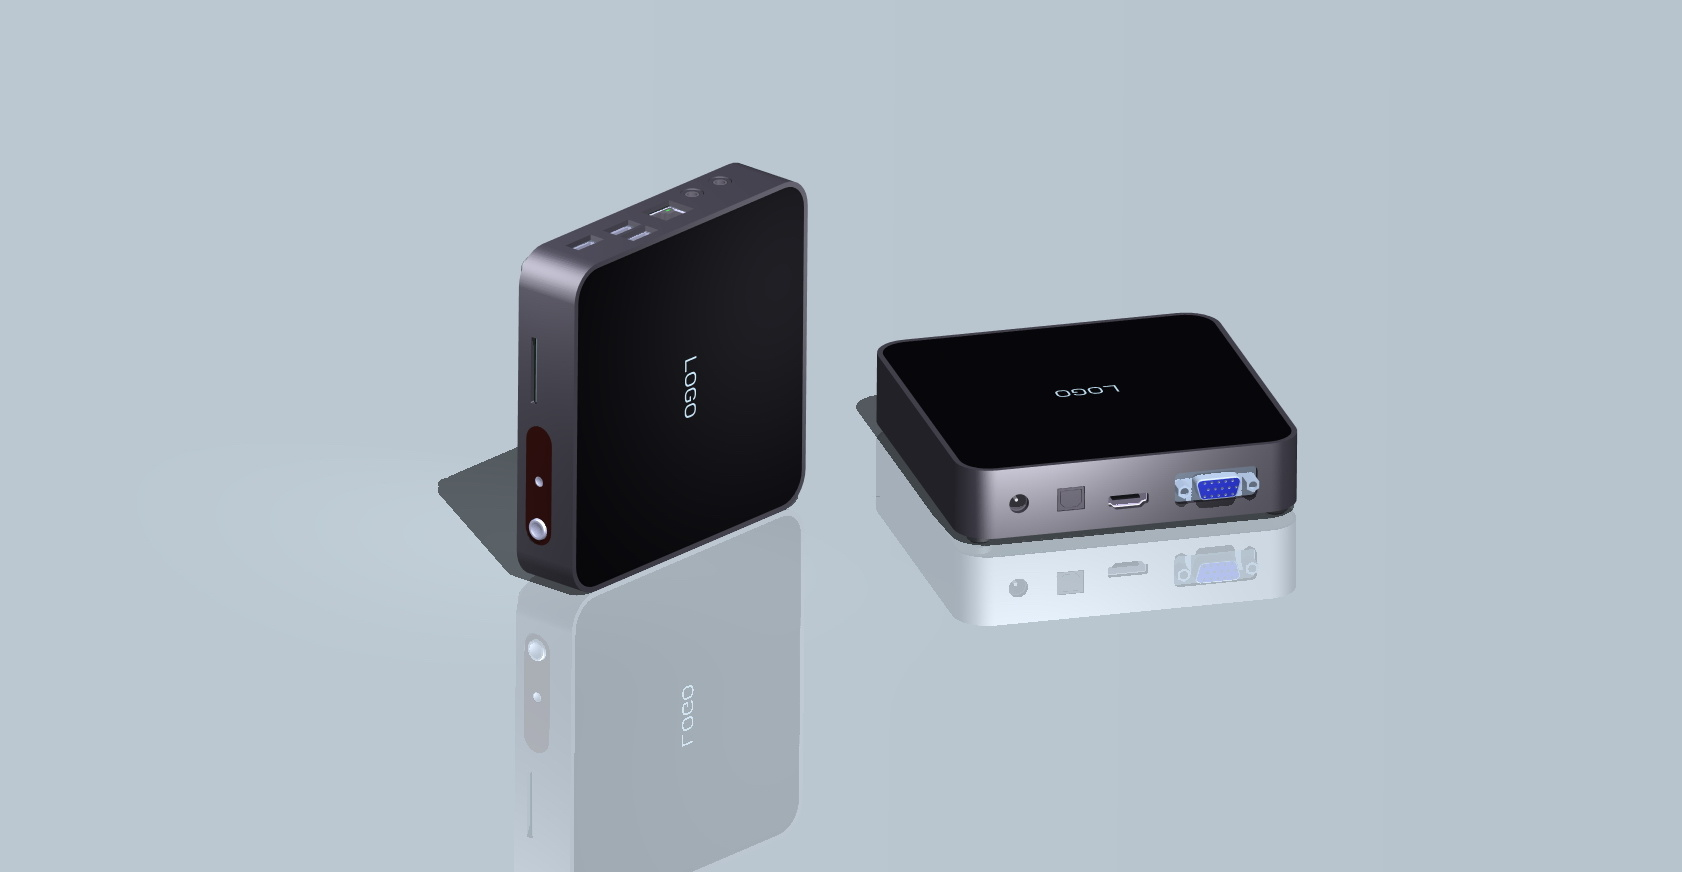 Android T V Box